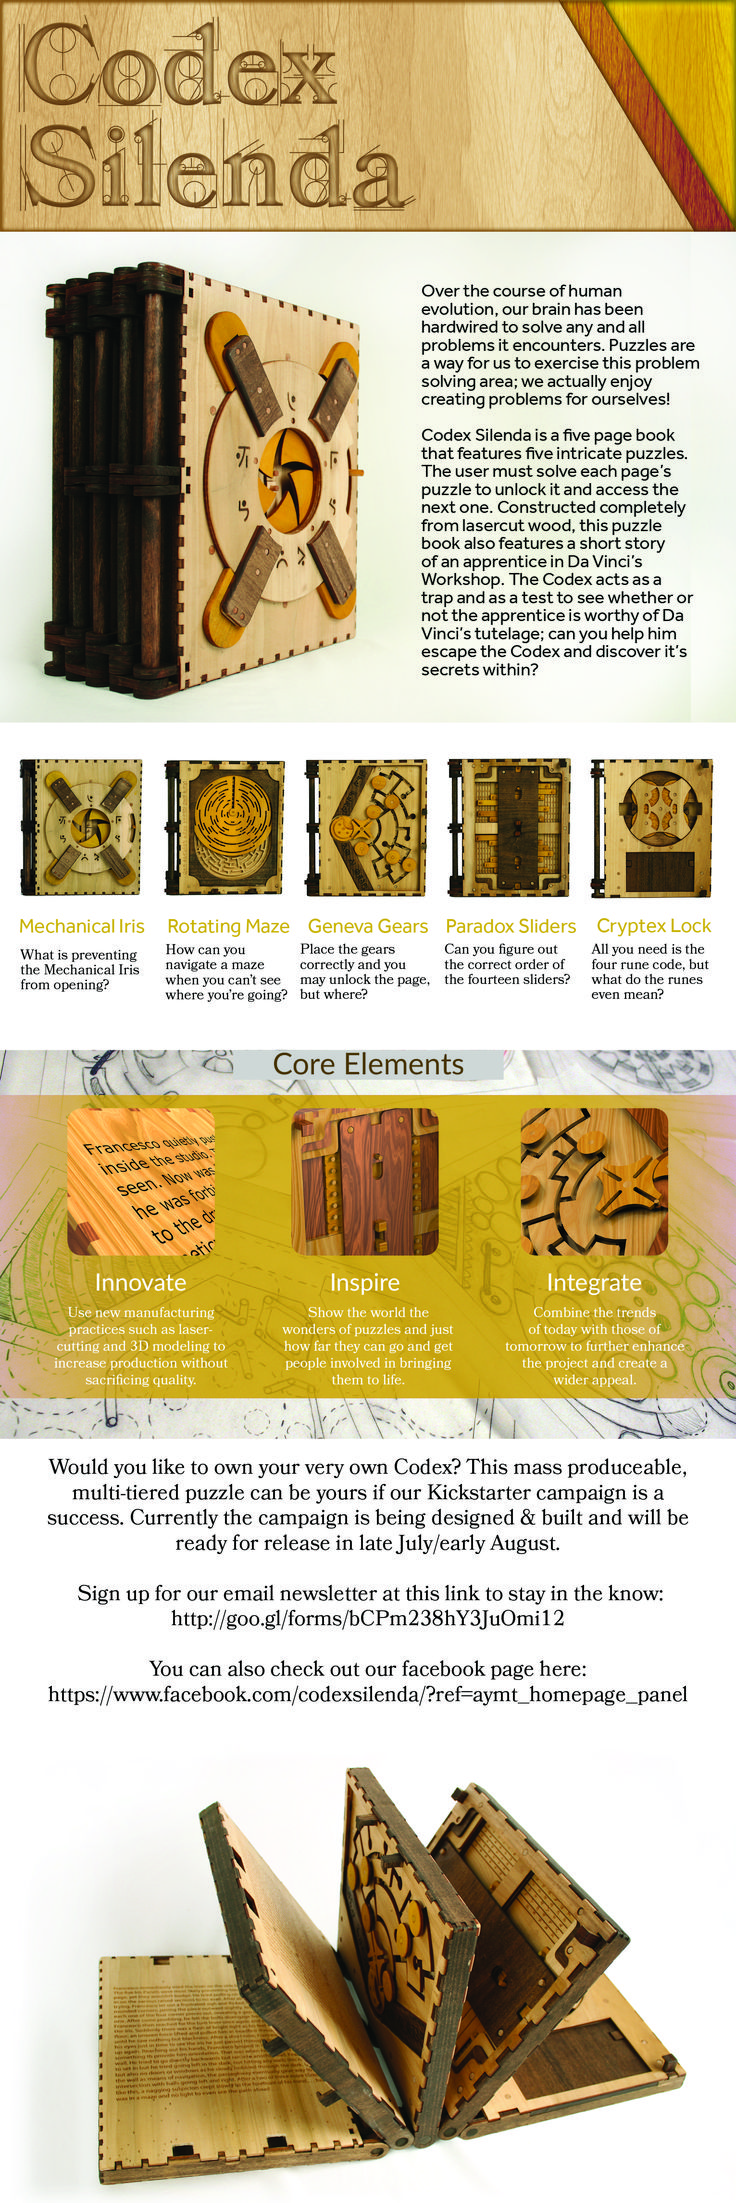 Codex Silenda is a puzzle book made entirely from laser-cut wood with minimal glue and no fasteners used in it's construction. And we are looking  to start a Kickstarter campaign for it!